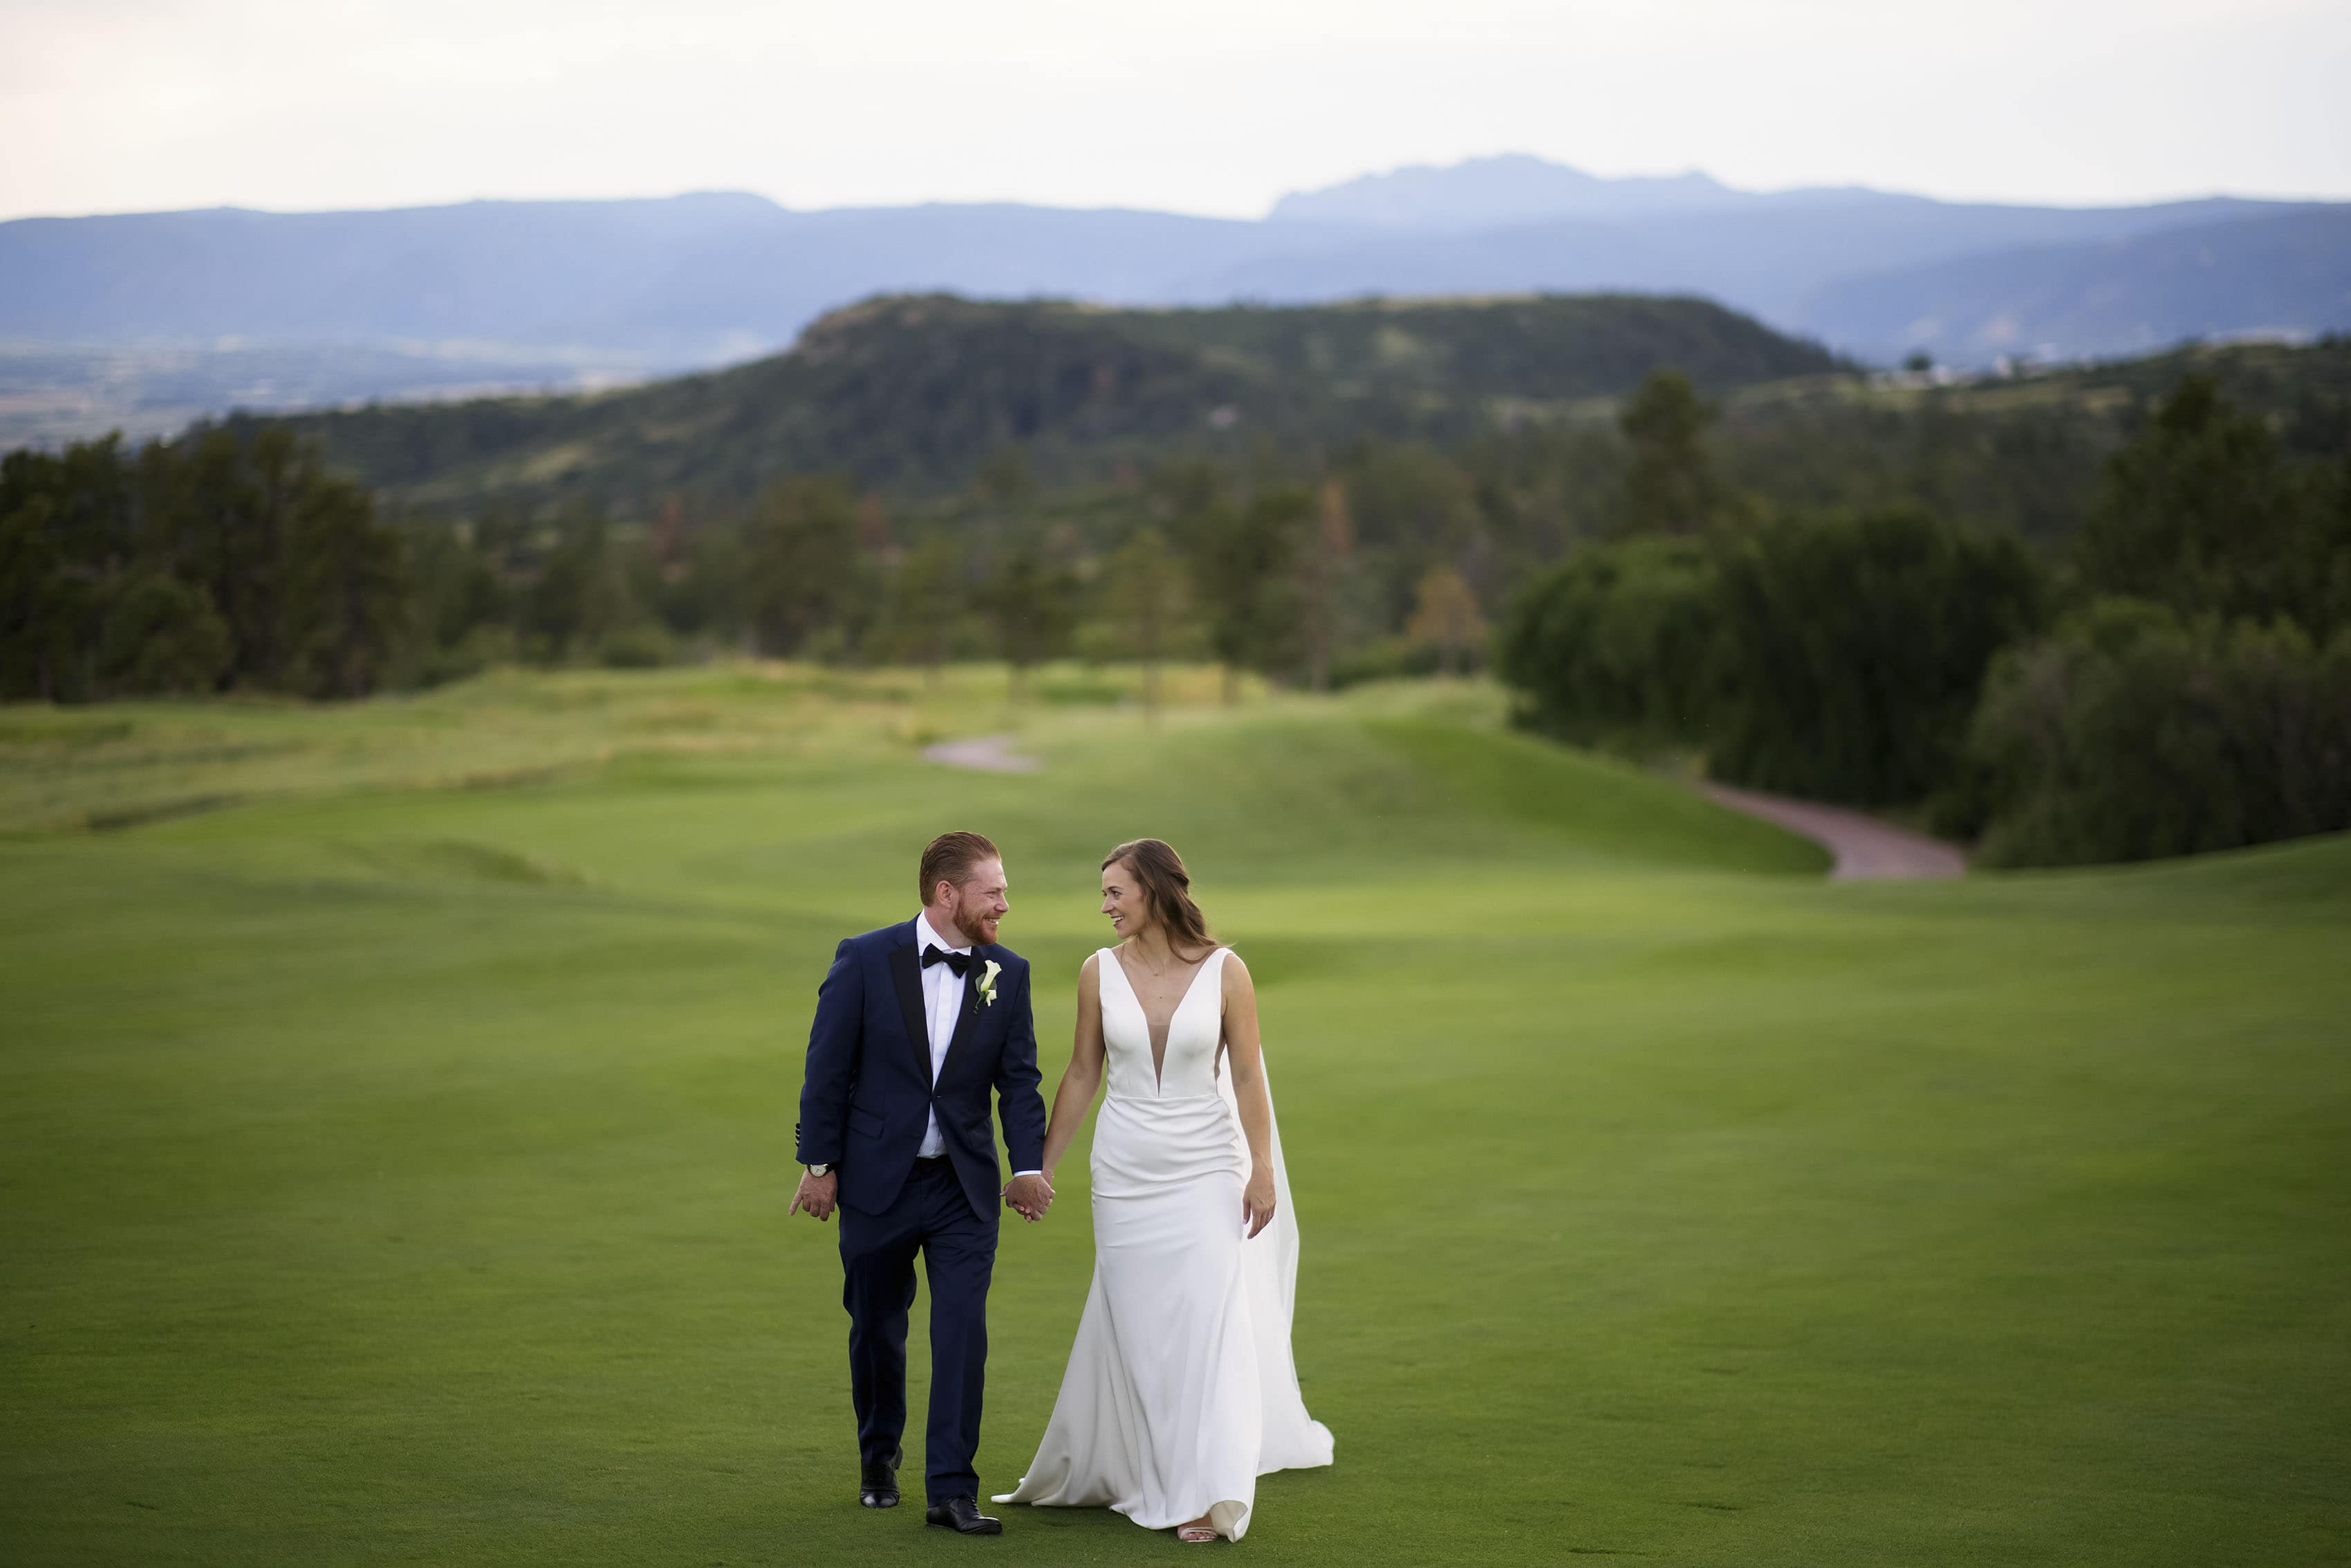 Casey and Darren walk along the 18th hole during their wedding at the Sanctuary